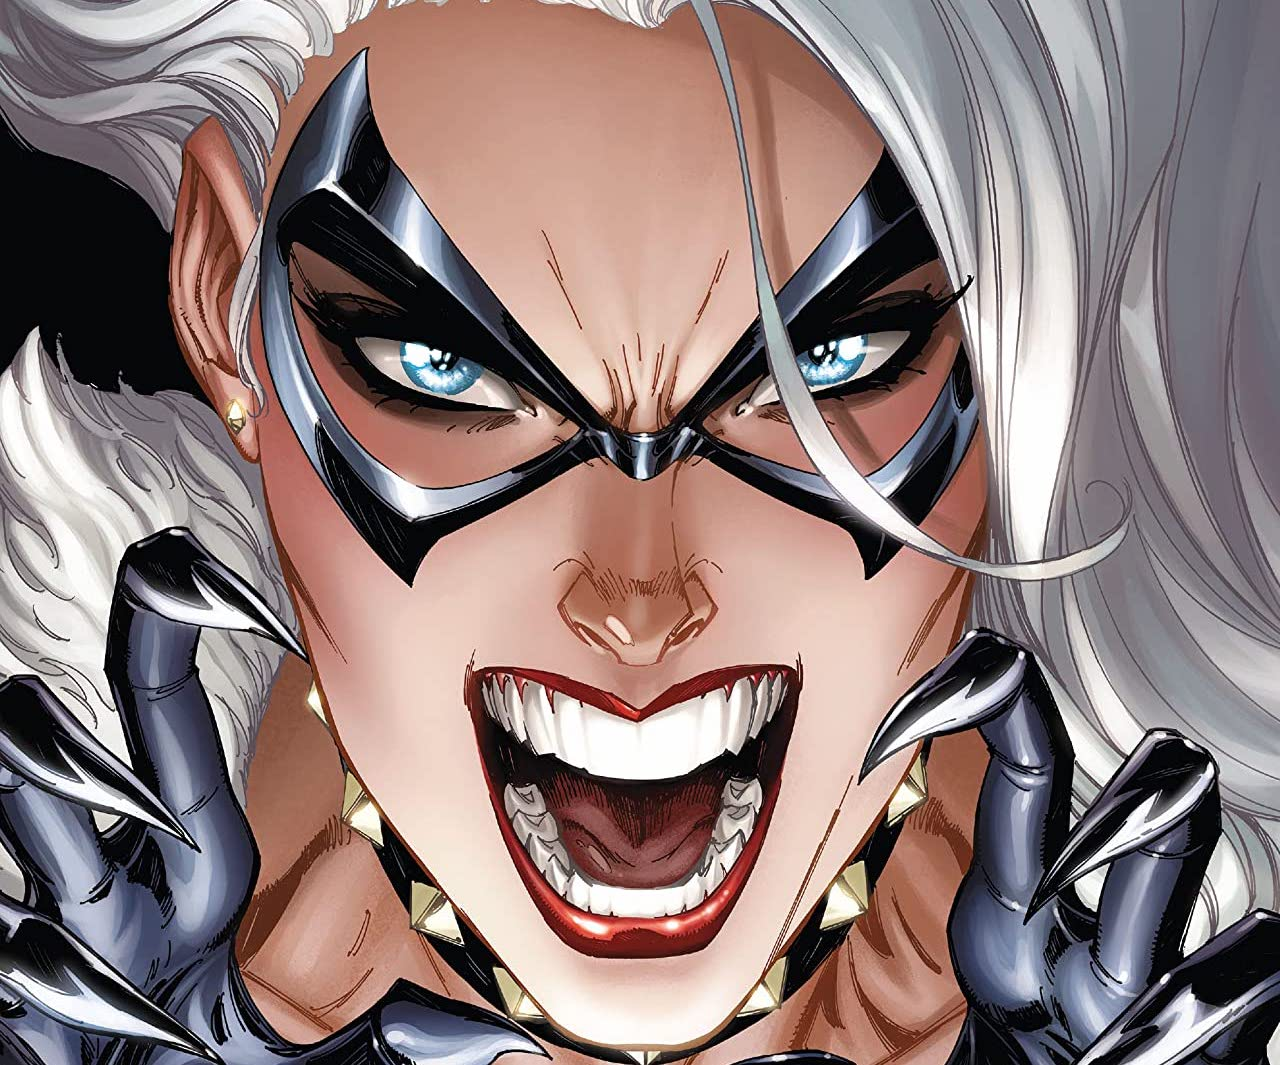 Get to see all the different sides of Black Cat in this second volume.